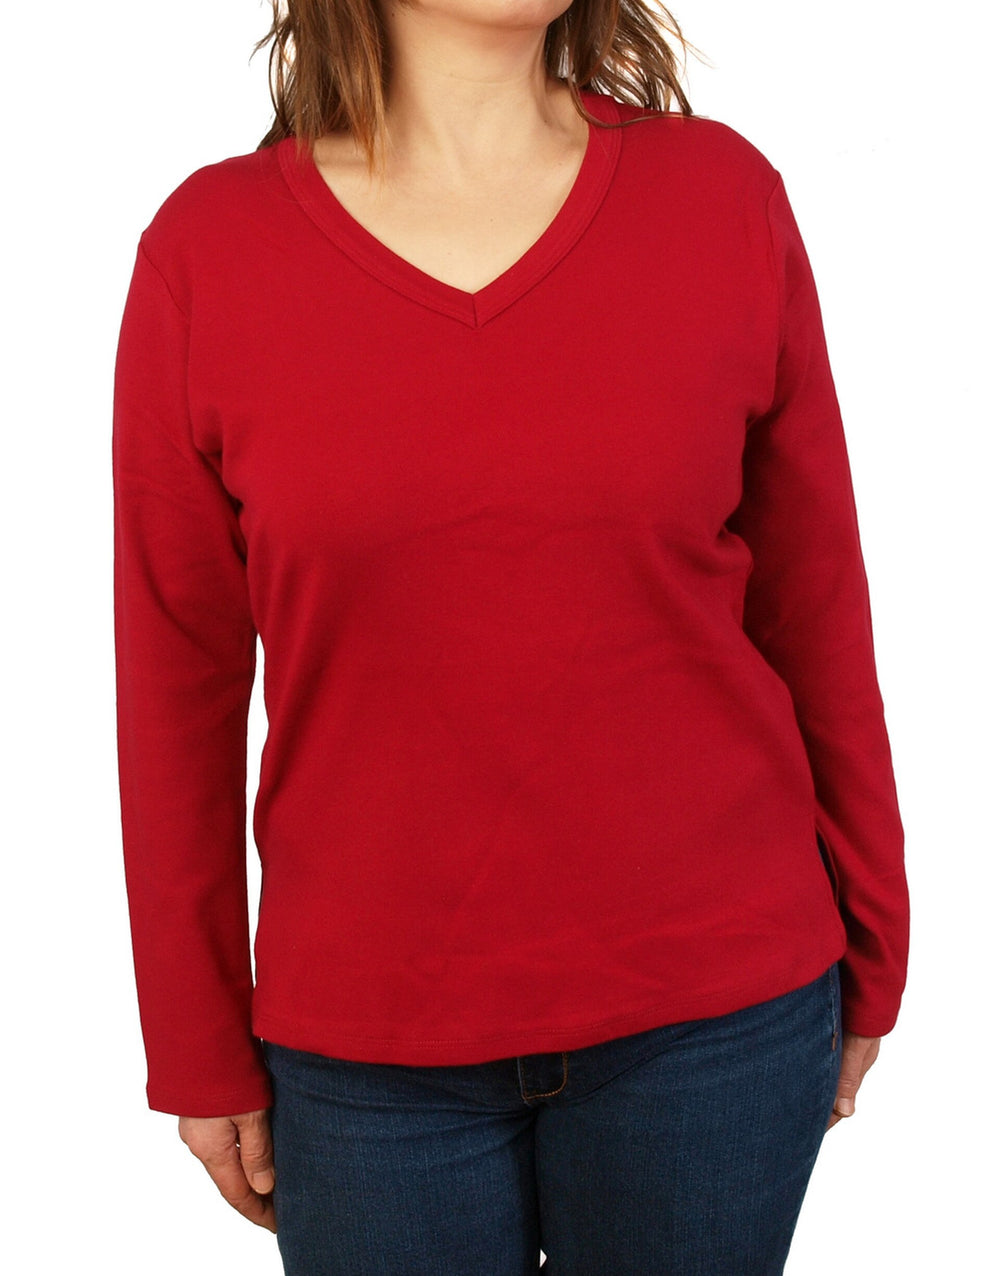 Necessitees t-shirt, 3/4-sleeve easy-fit v-neck